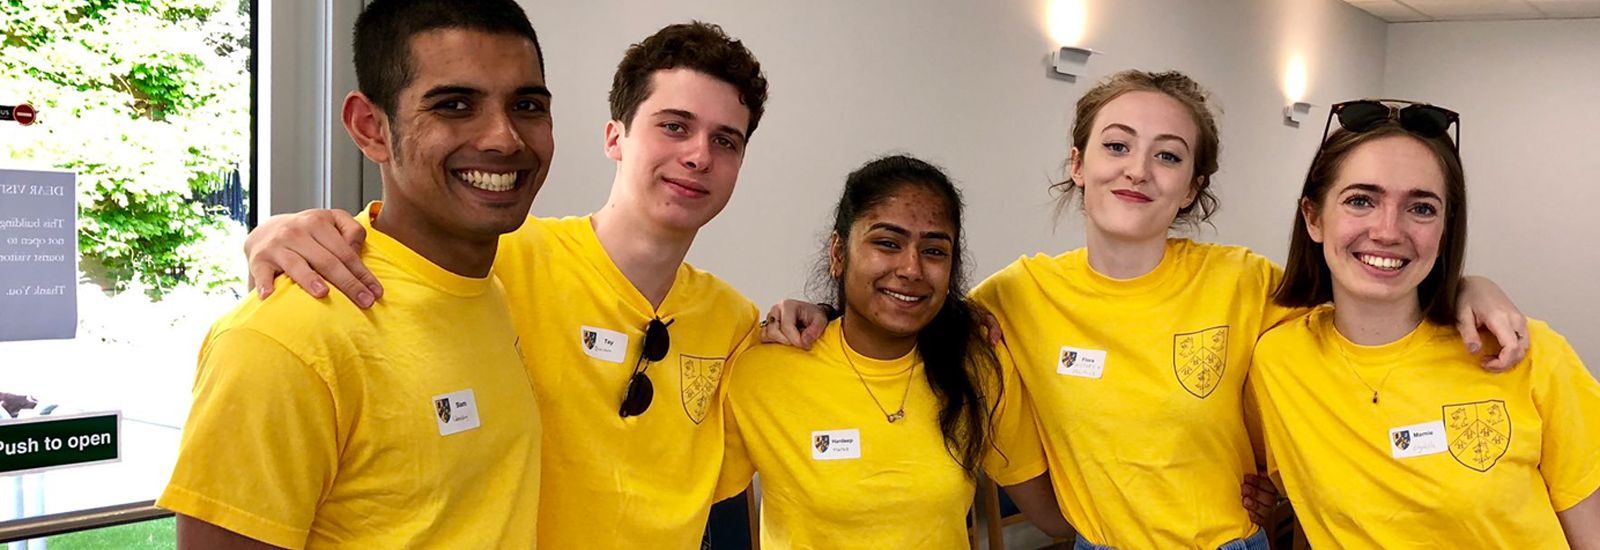 students in yellow t-shirts